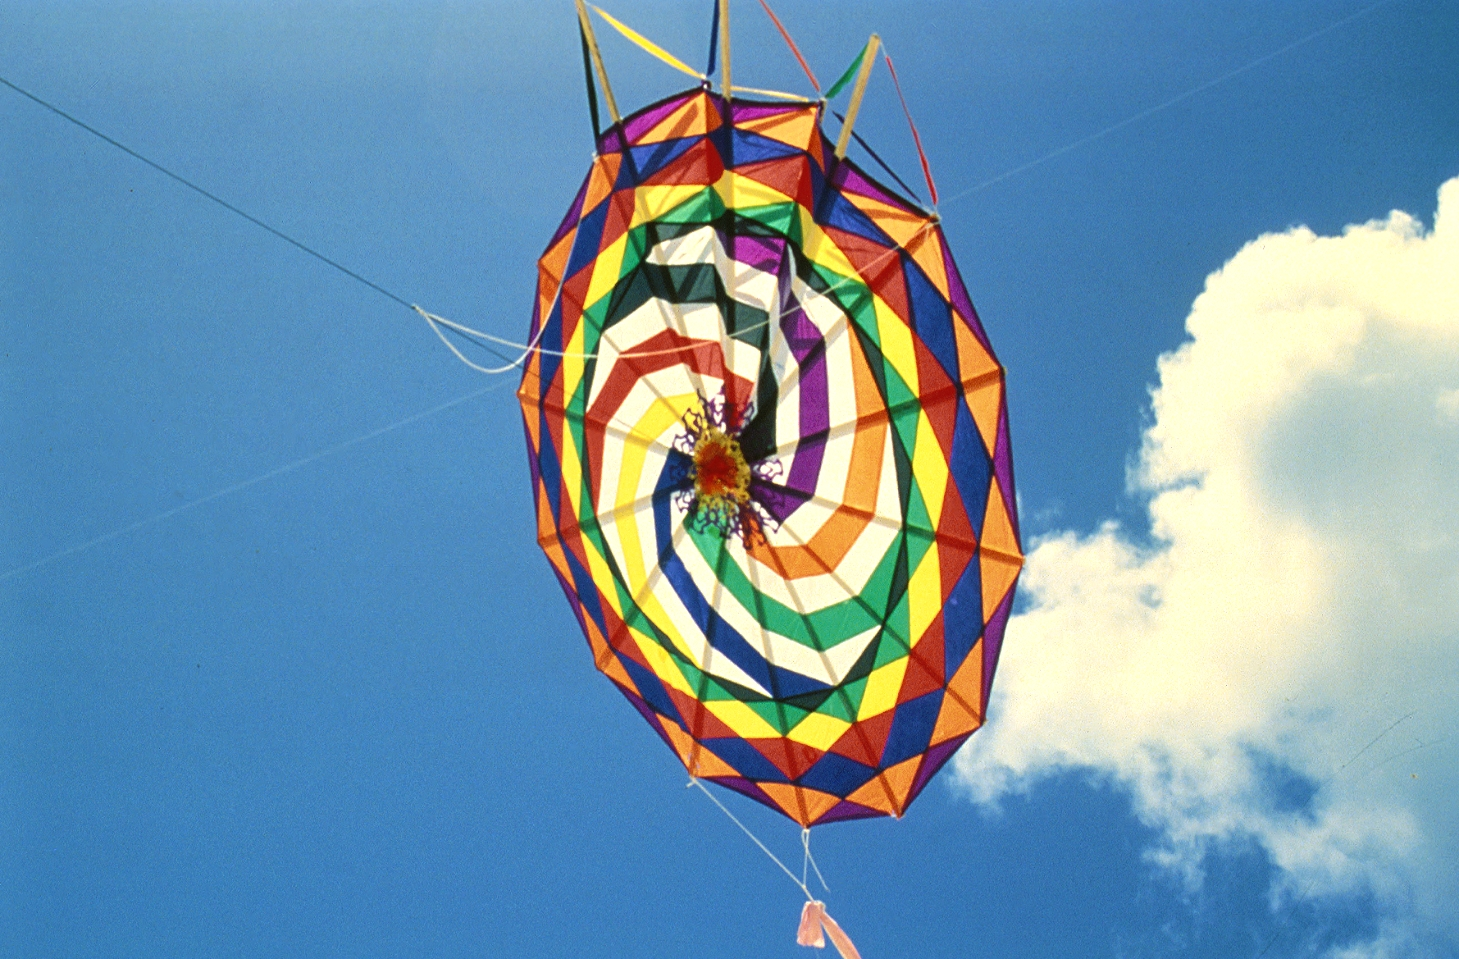 bermuda kites kite festival round shape kite international kite 1459x959